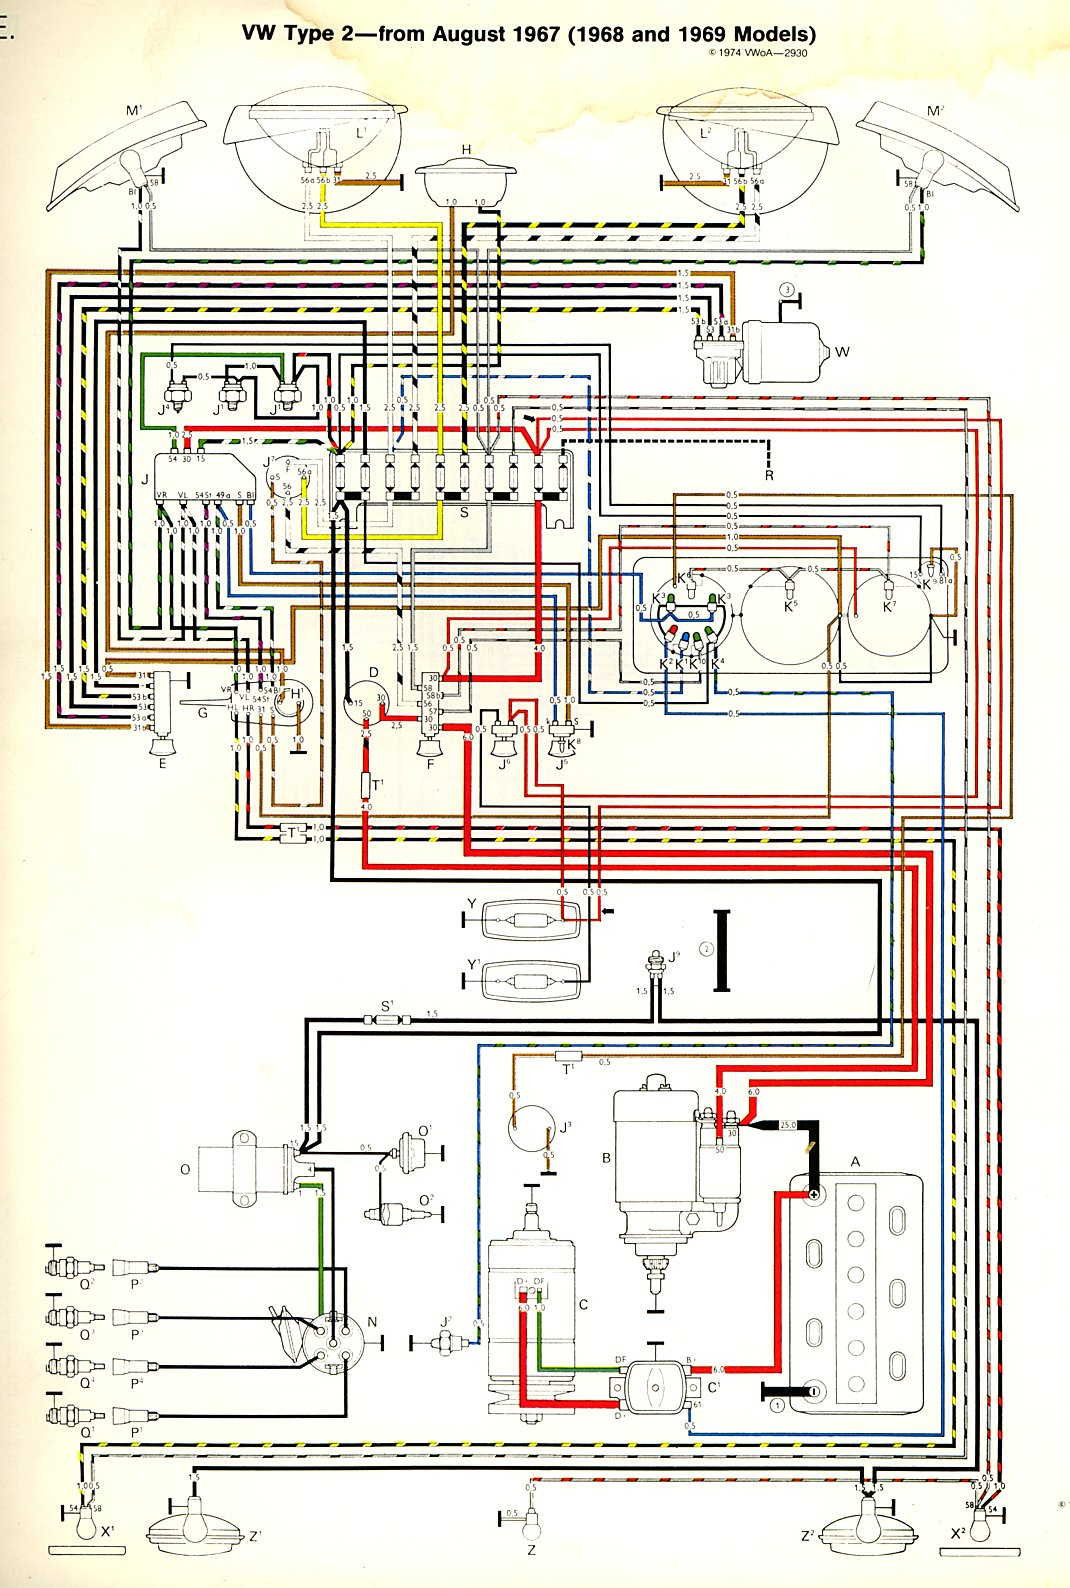 bus wiring diagram wiring diagram 66 vw bus wiring diagram mci bus wiring schematic #6